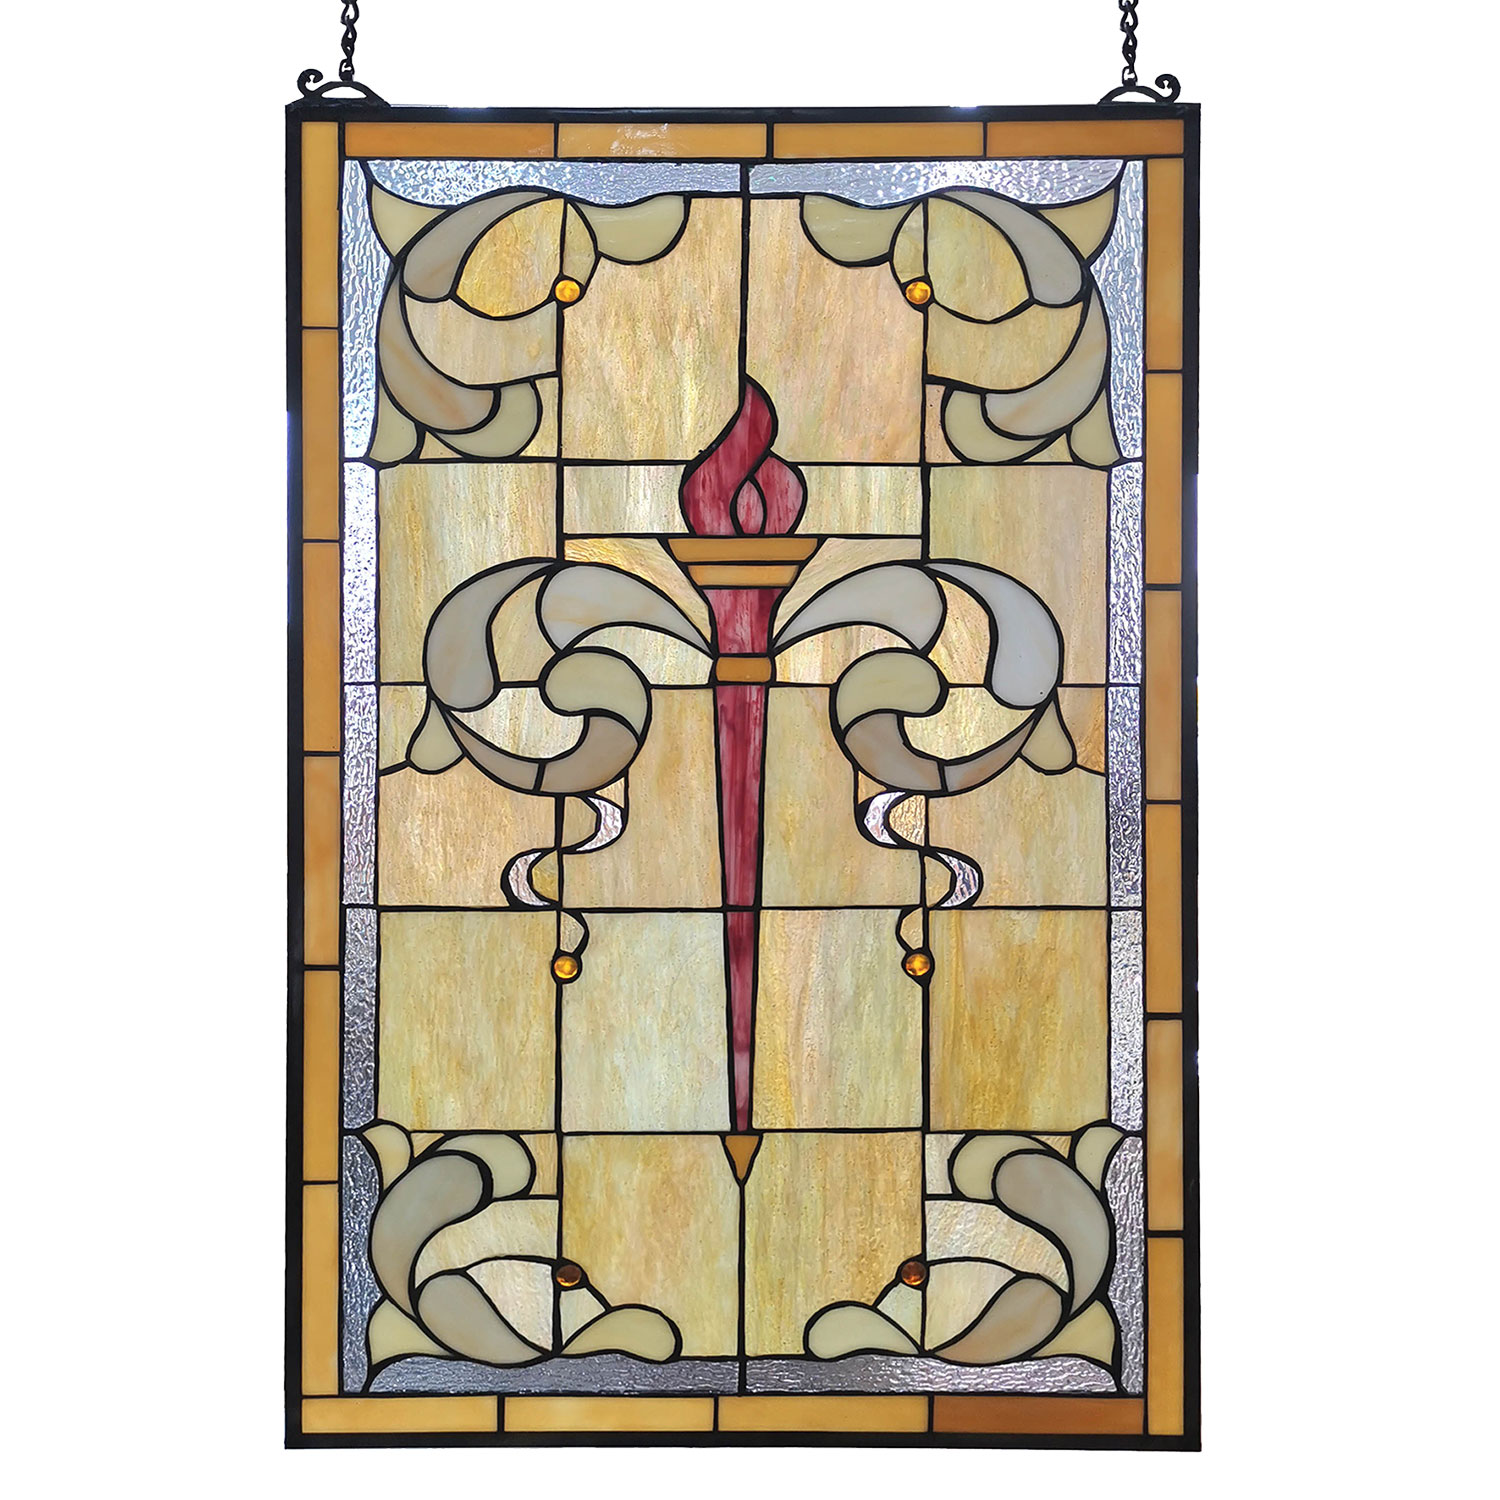 Tiffany Glass Fenster Fackel